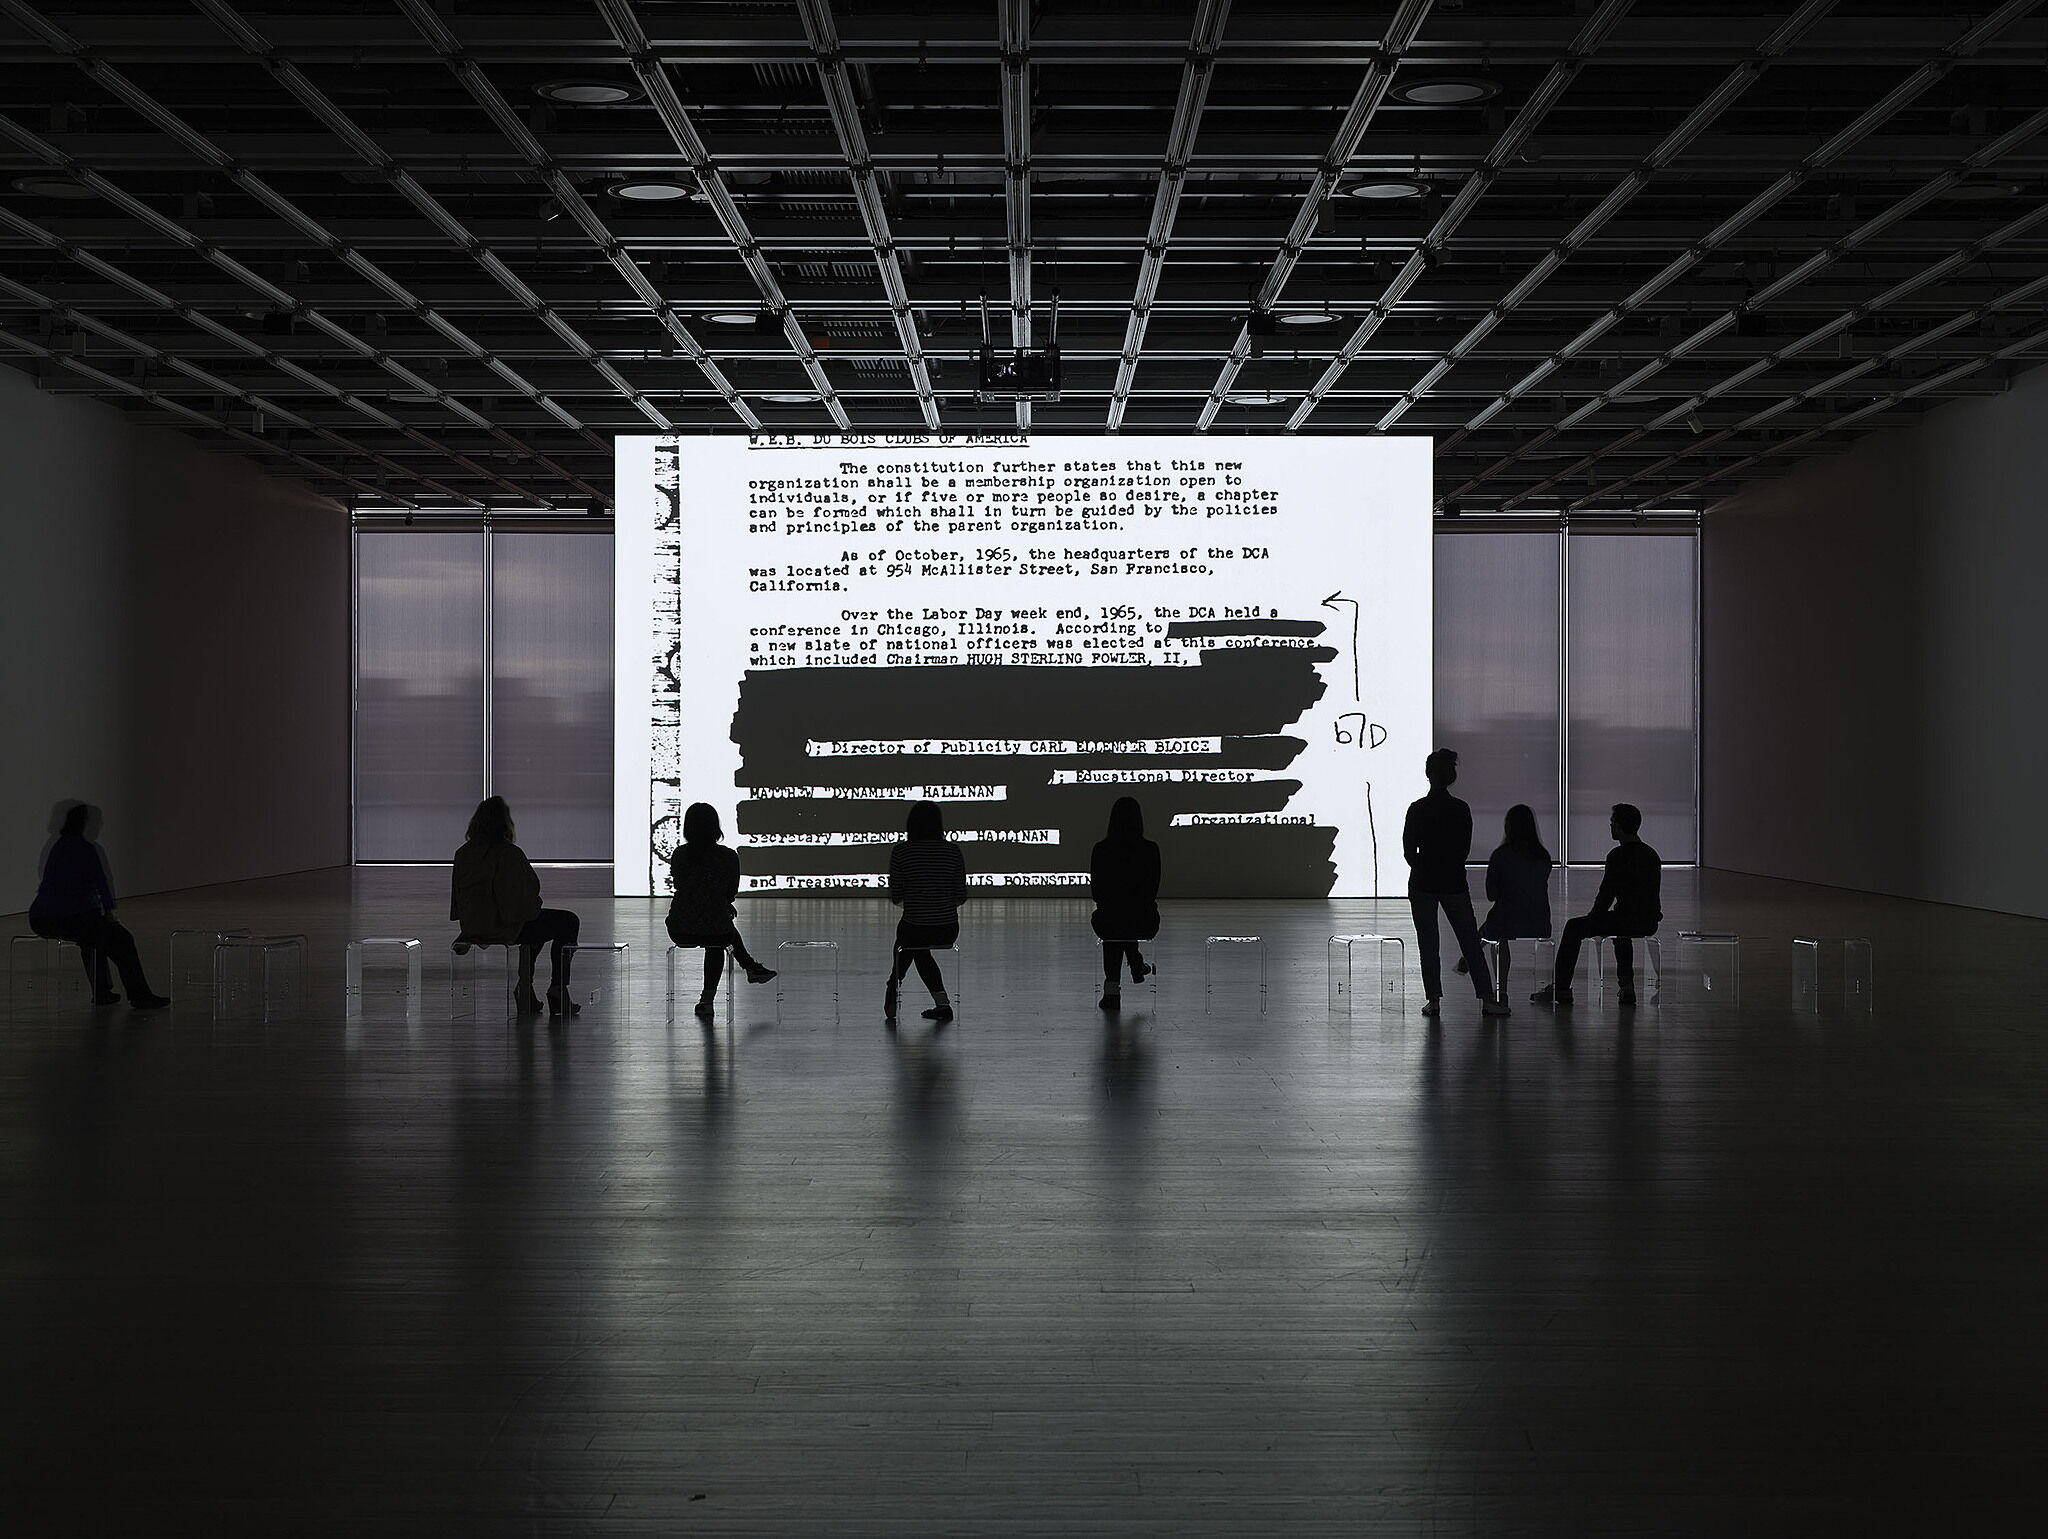 People sit and stand in a dark room with a screen displaying a document.